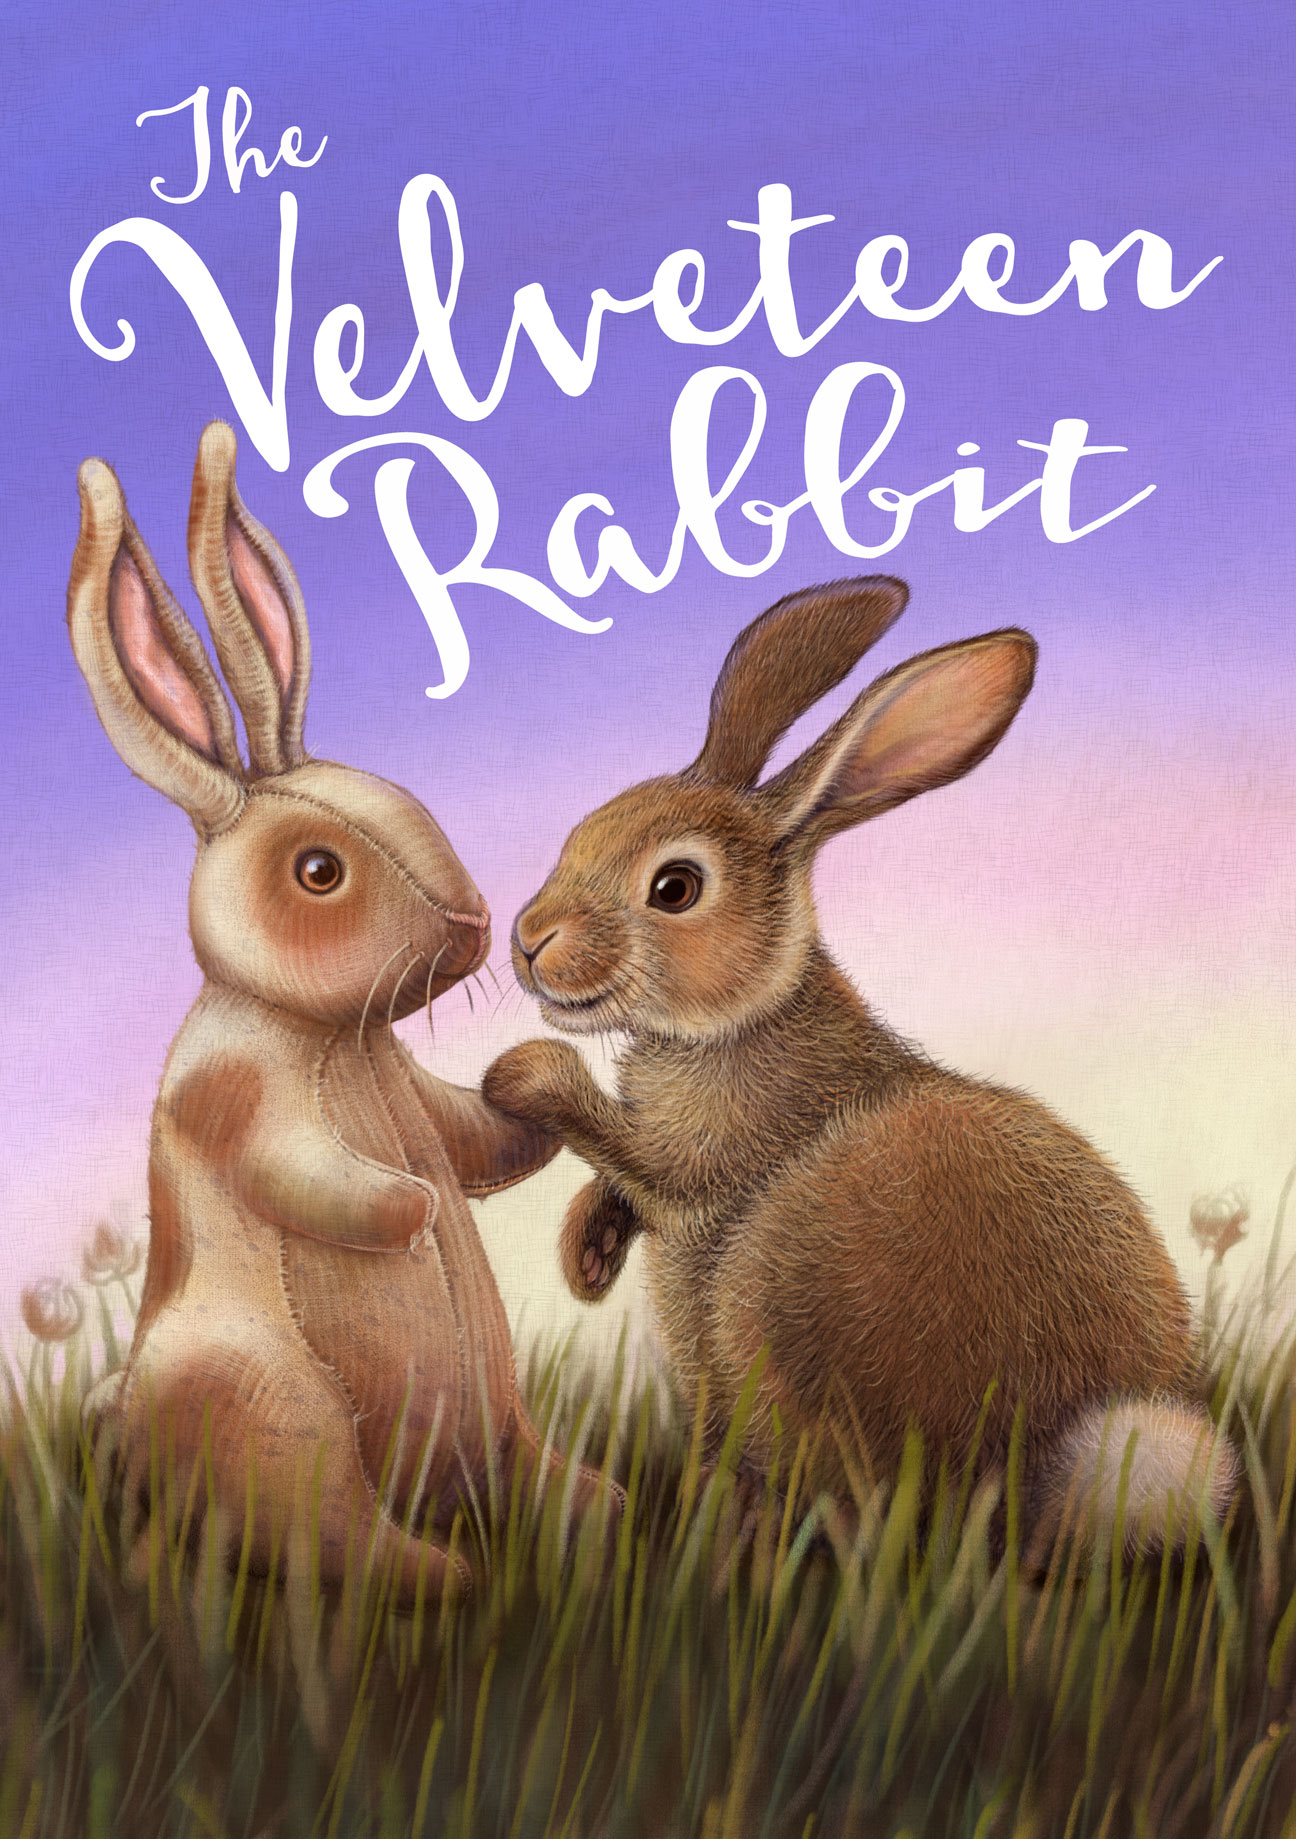 Velveteen Rabbit - by Marian Street Theatre for Young People